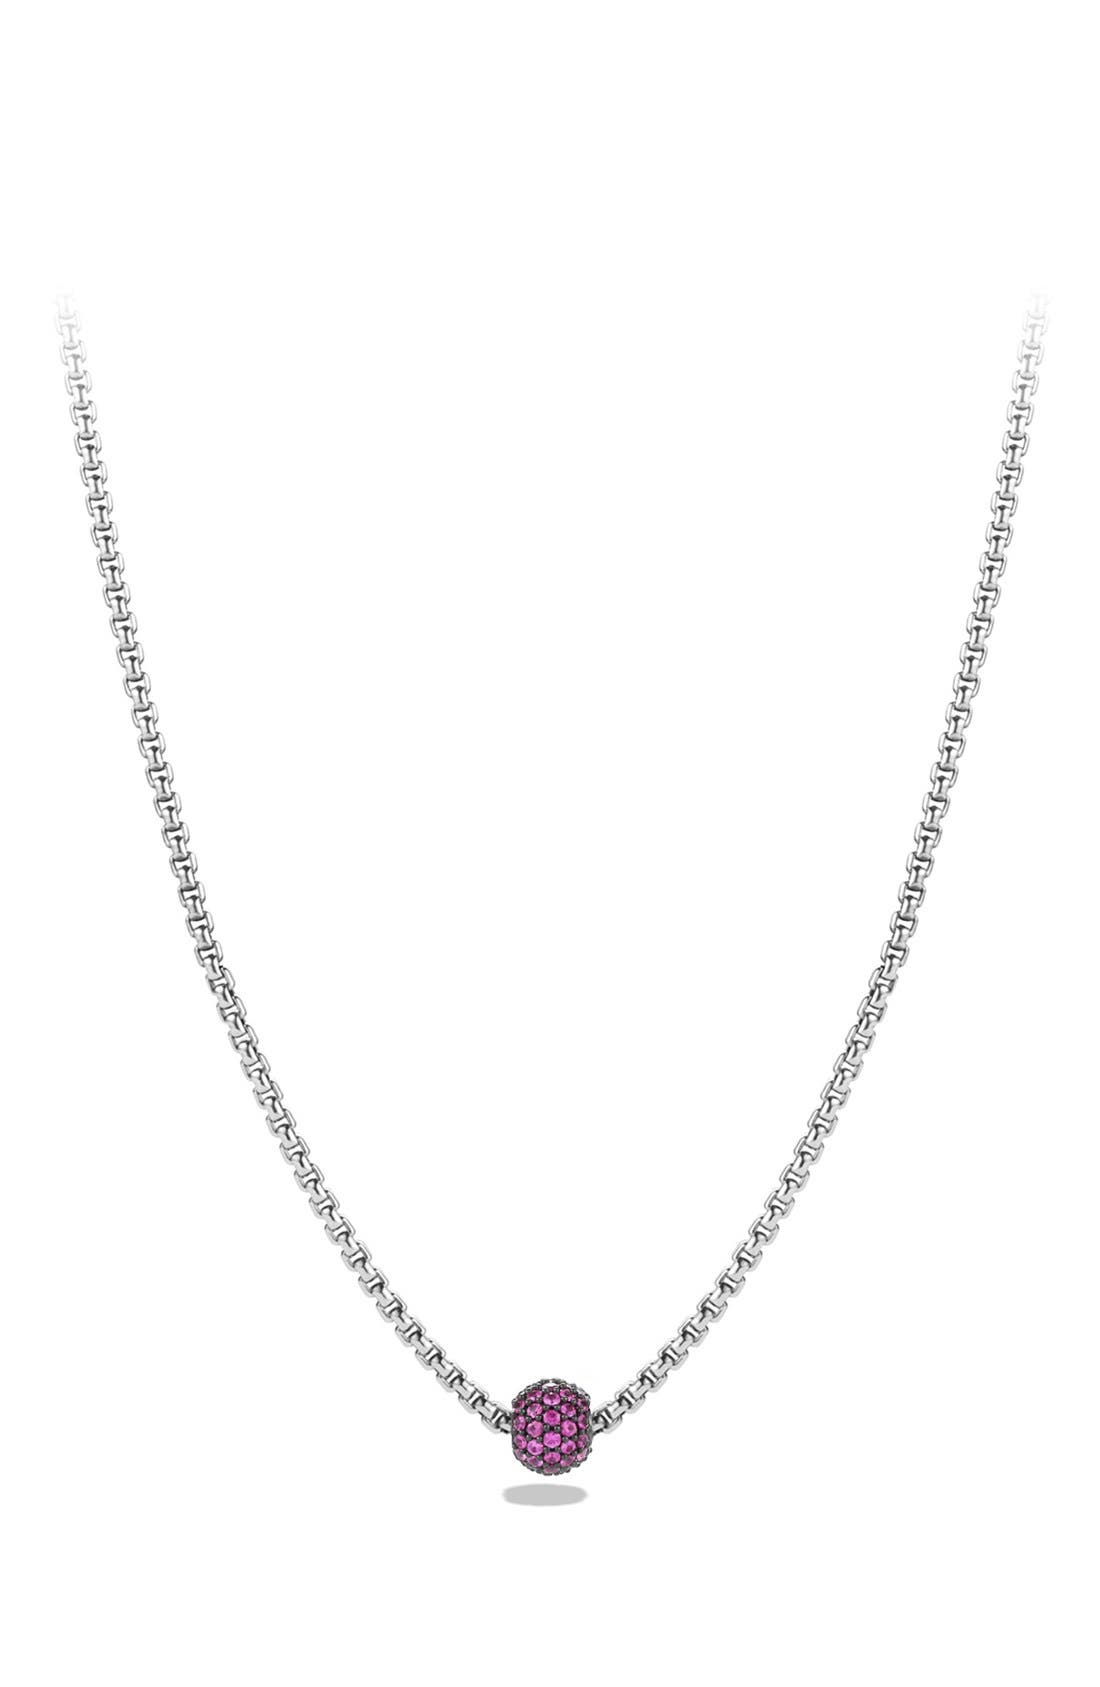 Main Image - David Yurman 'Metro' Petite Pavé Chain Necklace with Sapphires